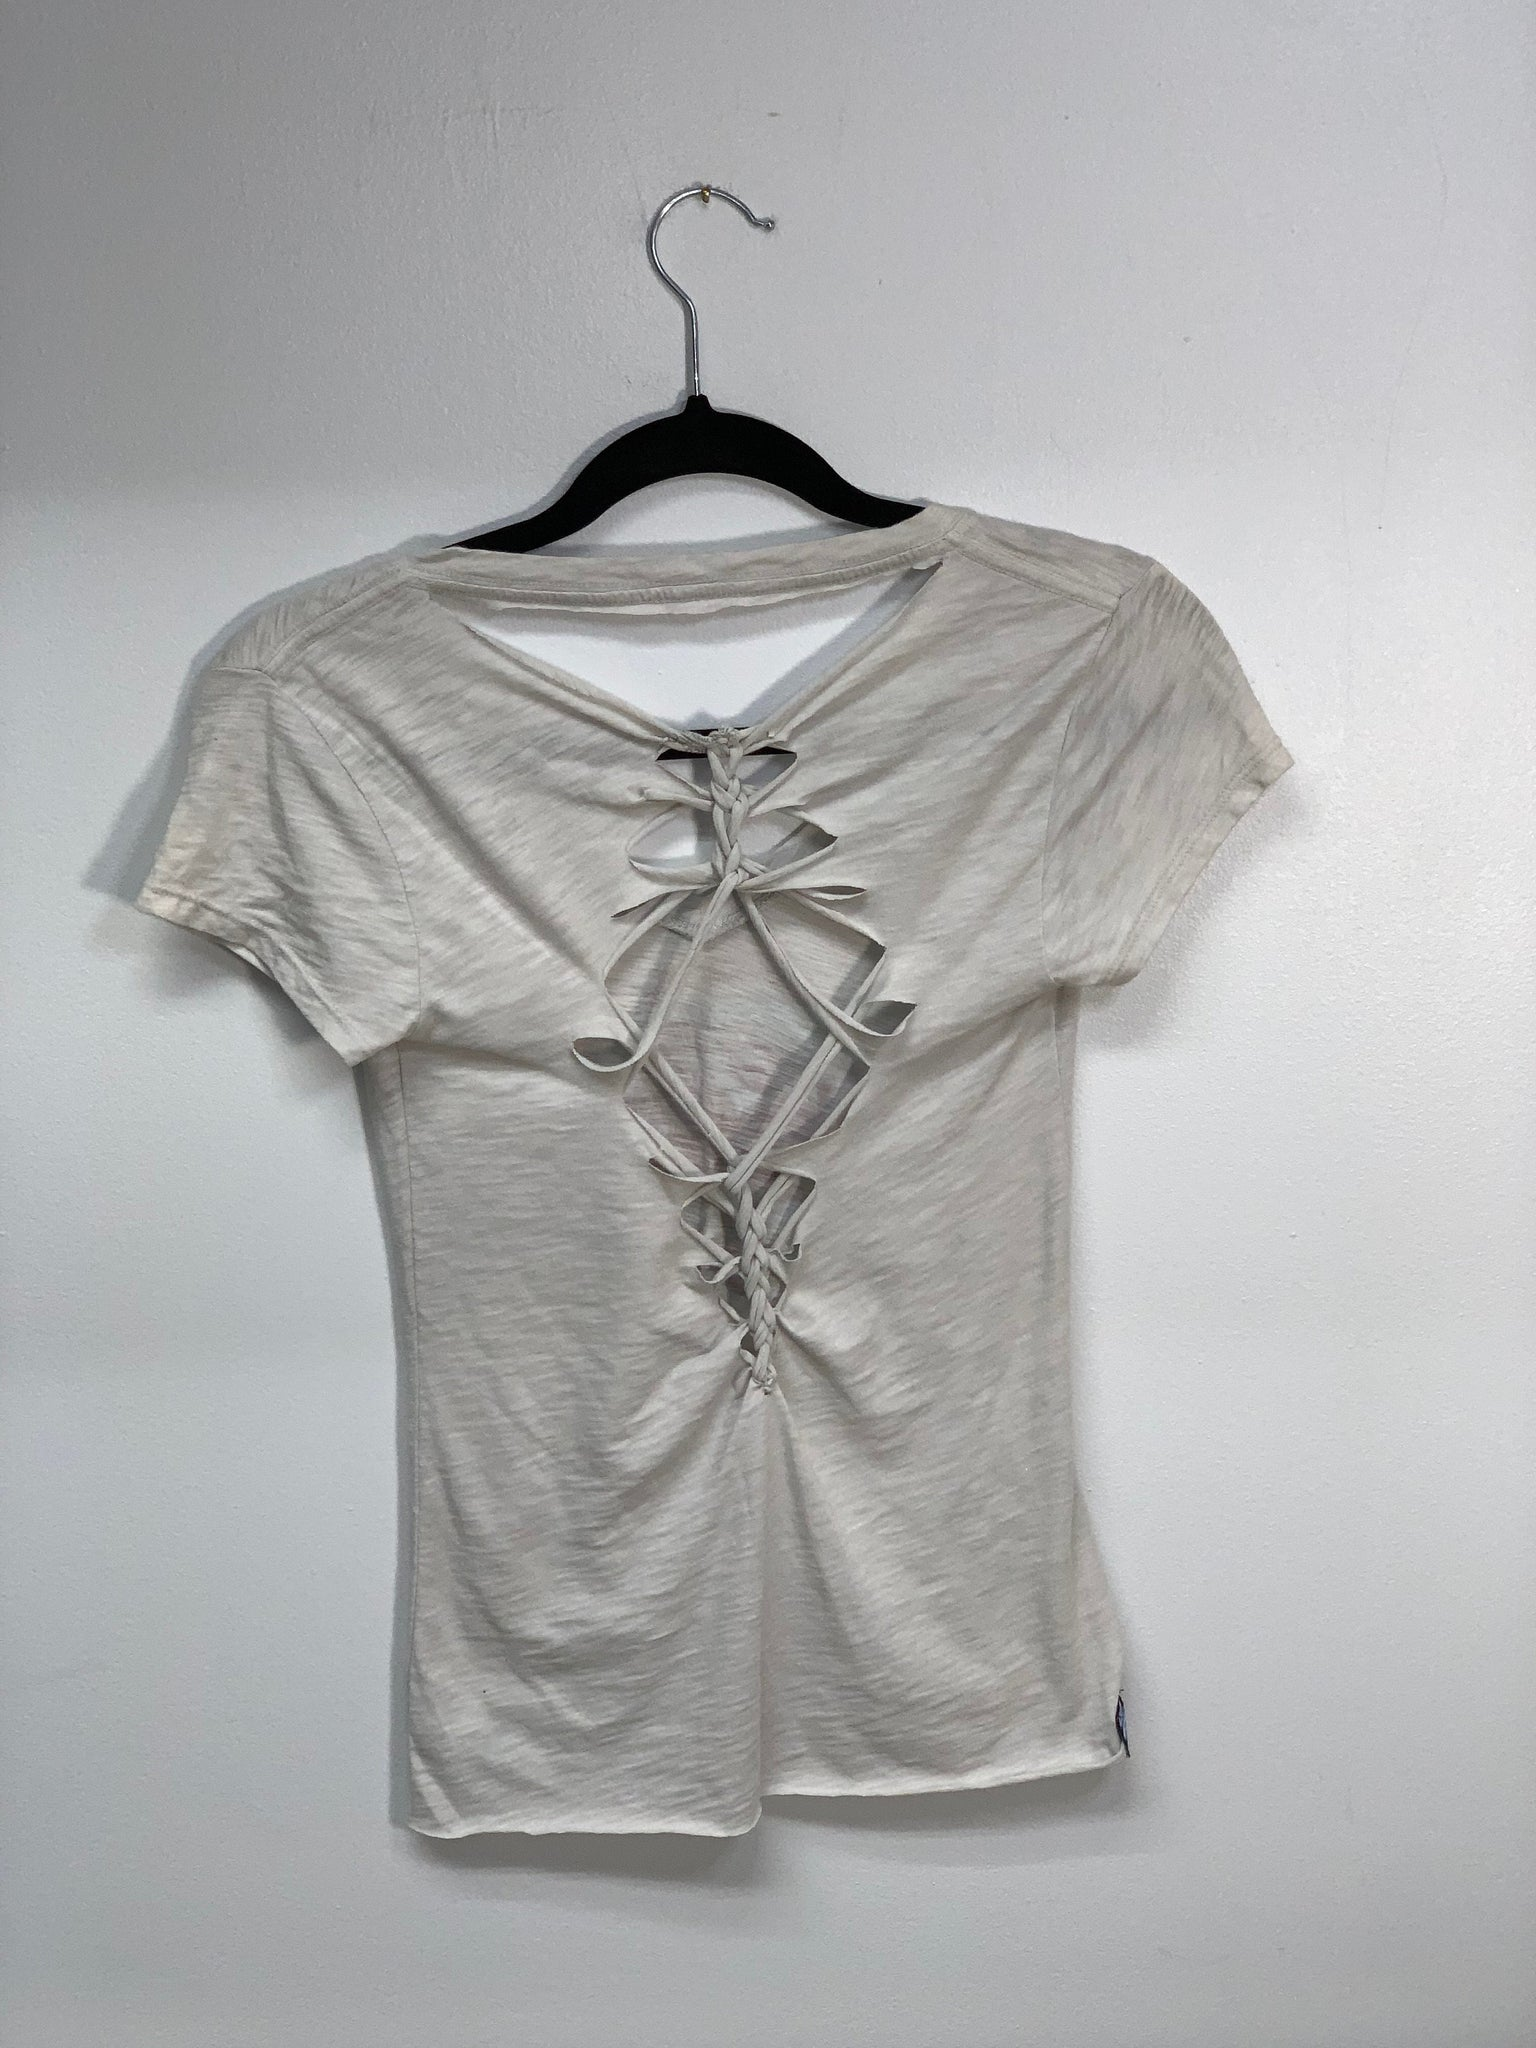 Taylor Swift Fan Girl Shirt Cut Up by Sniptease Size S